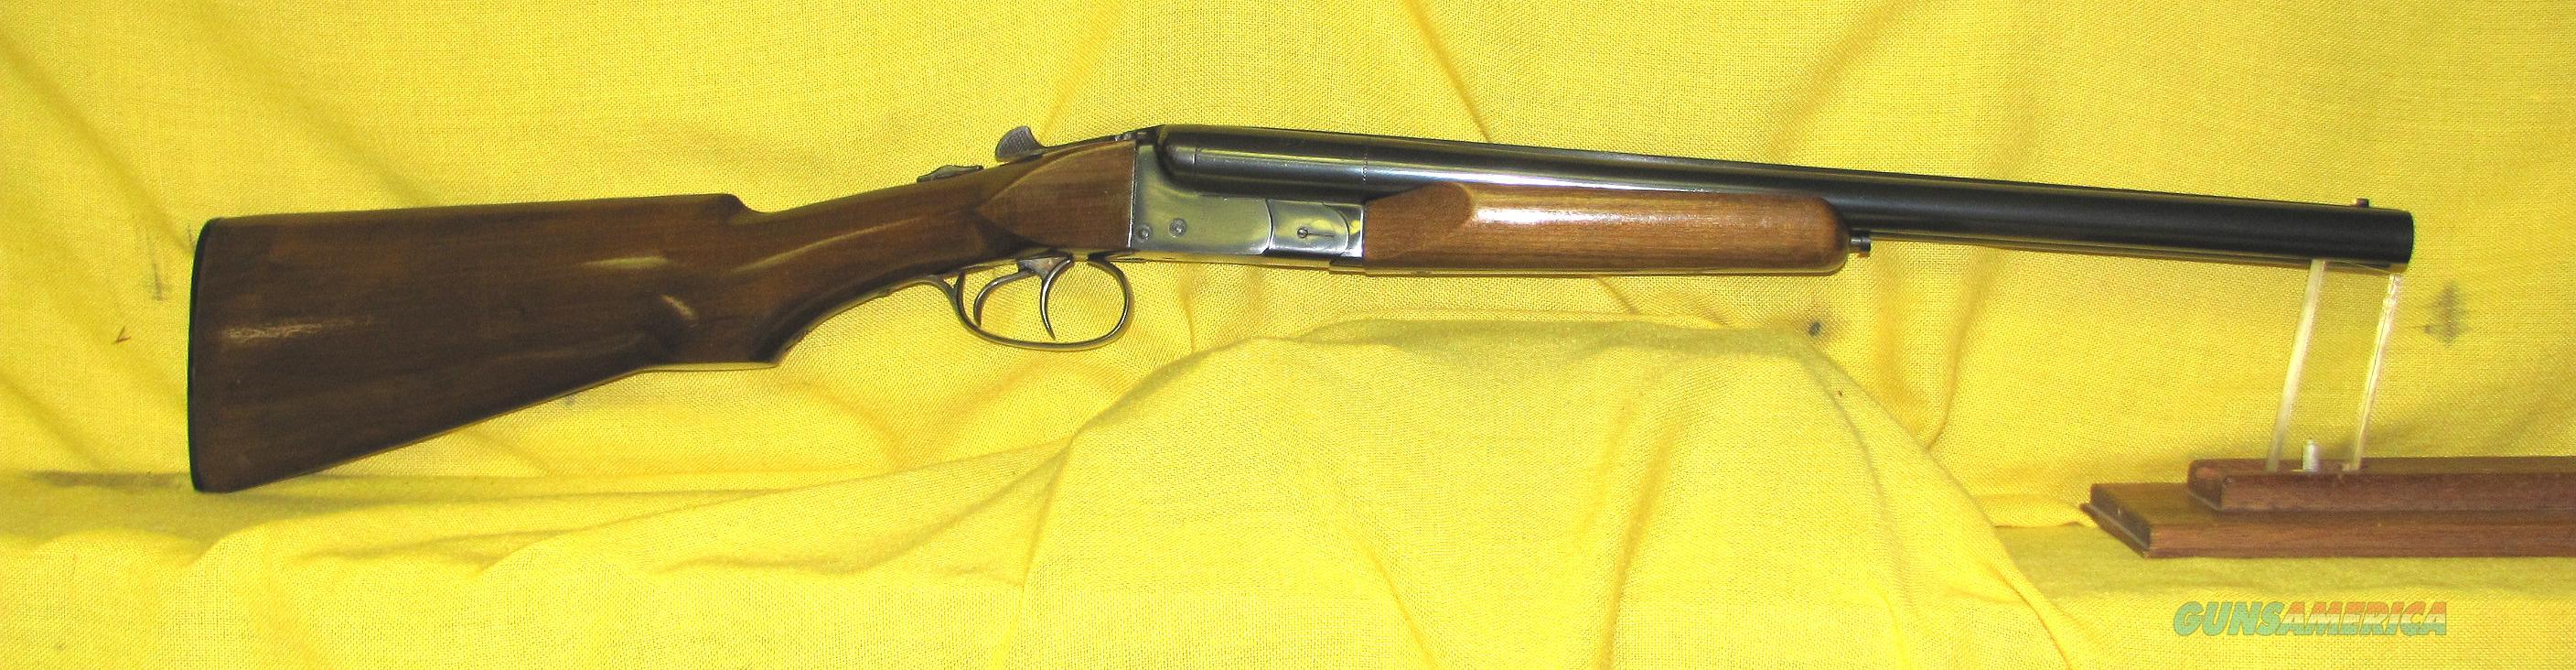 "H&R COACH SHOTGUN BY ROSSI 12GA 18 1/4"" BARRELS  Guns > Shotguns > Harrington & Richardson Shotguns"